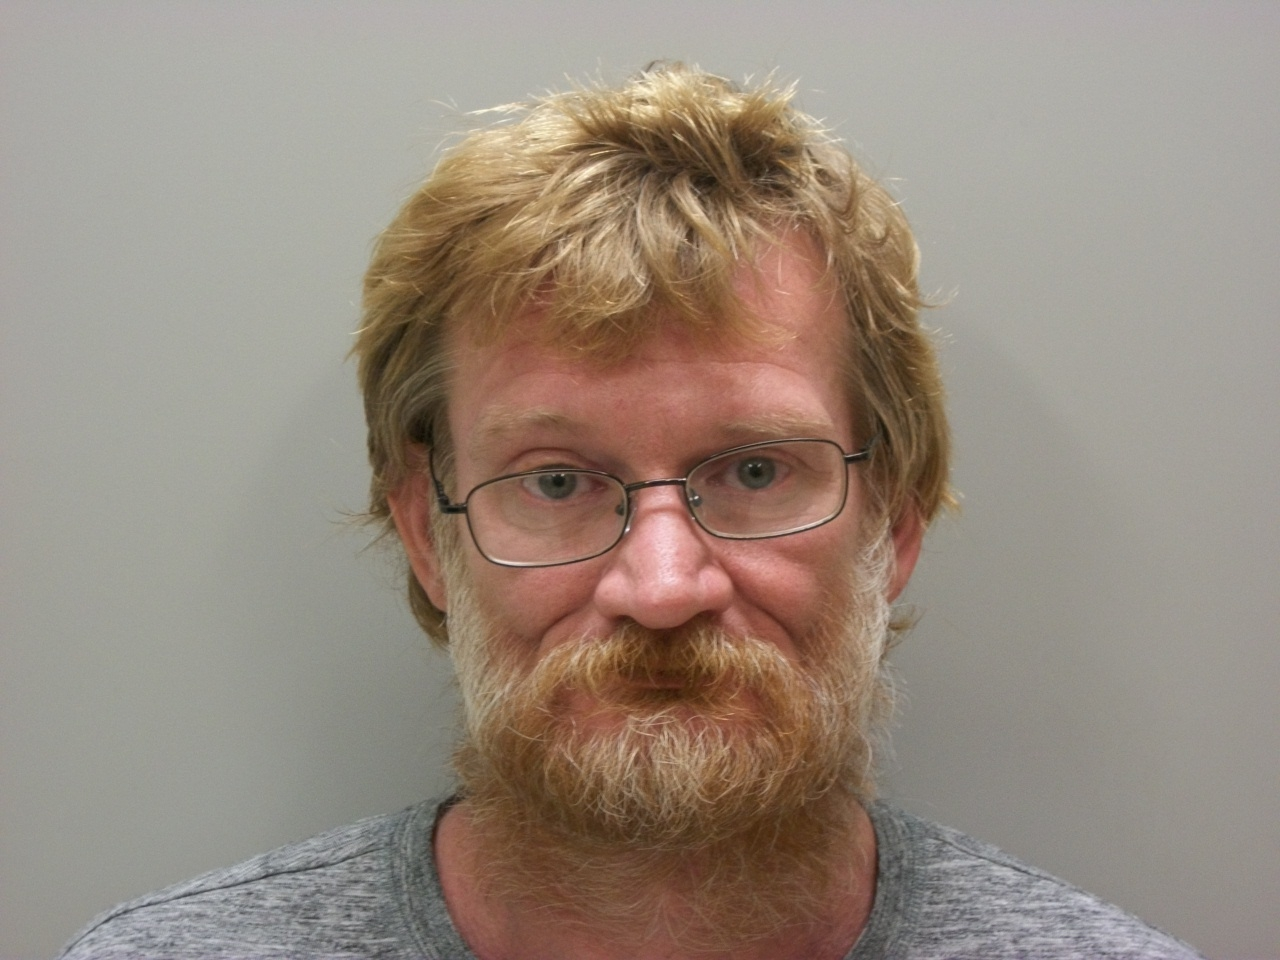 BRIAN KEITH TINDELL (WCSO)